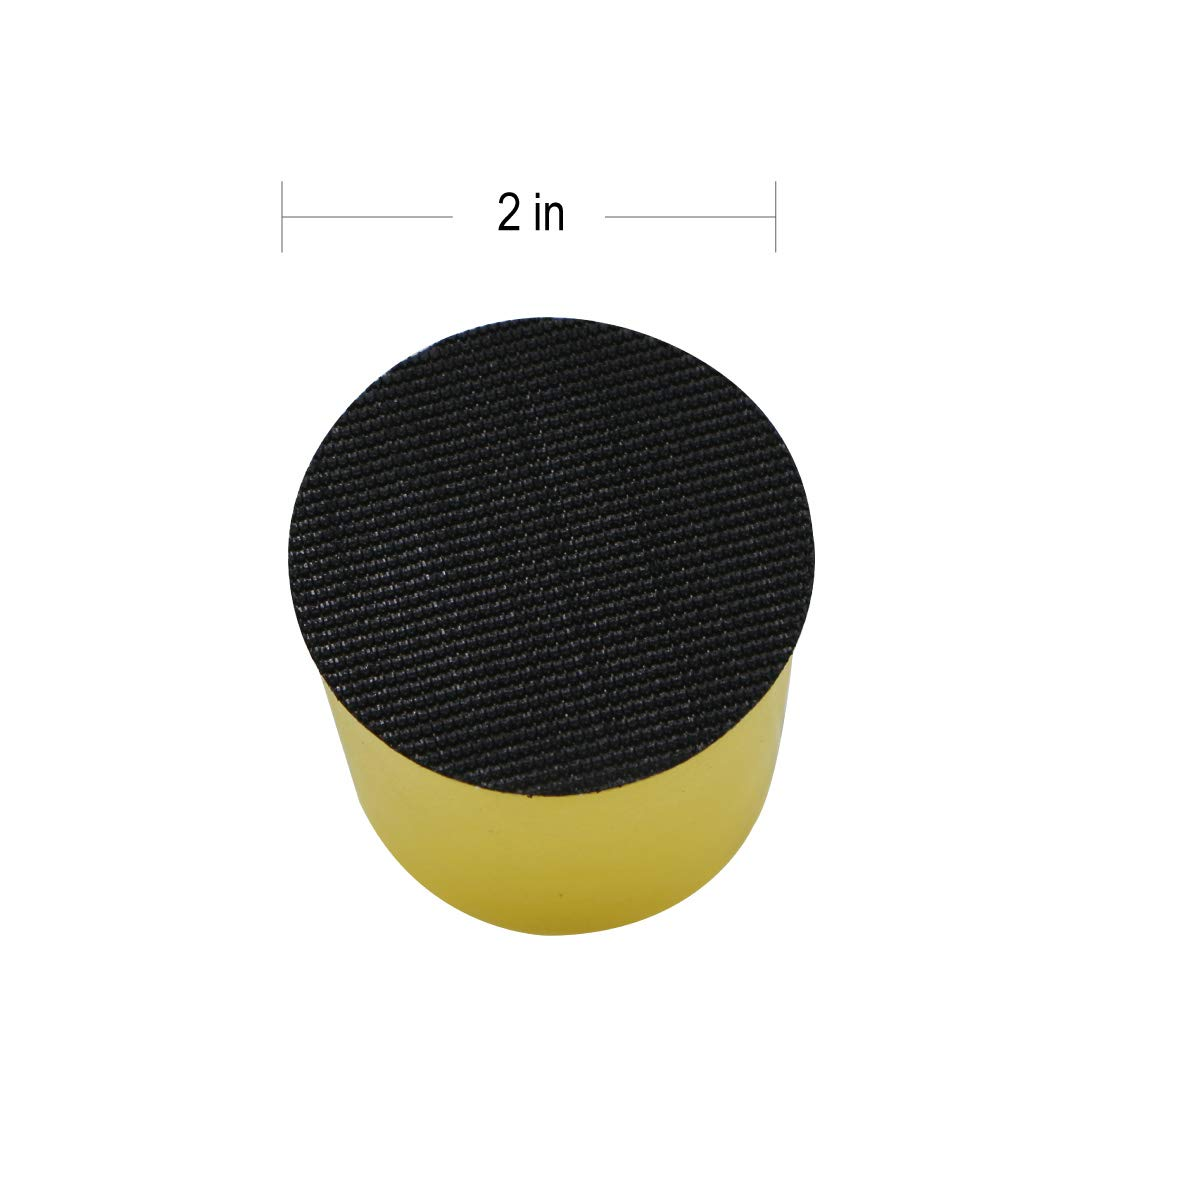 4 Inch Hand Sanding Block Foam Polishing Pad Abrasive Tools Hook and Loop Disc Attachment Tools Accessories 100mm by VIBRATITE